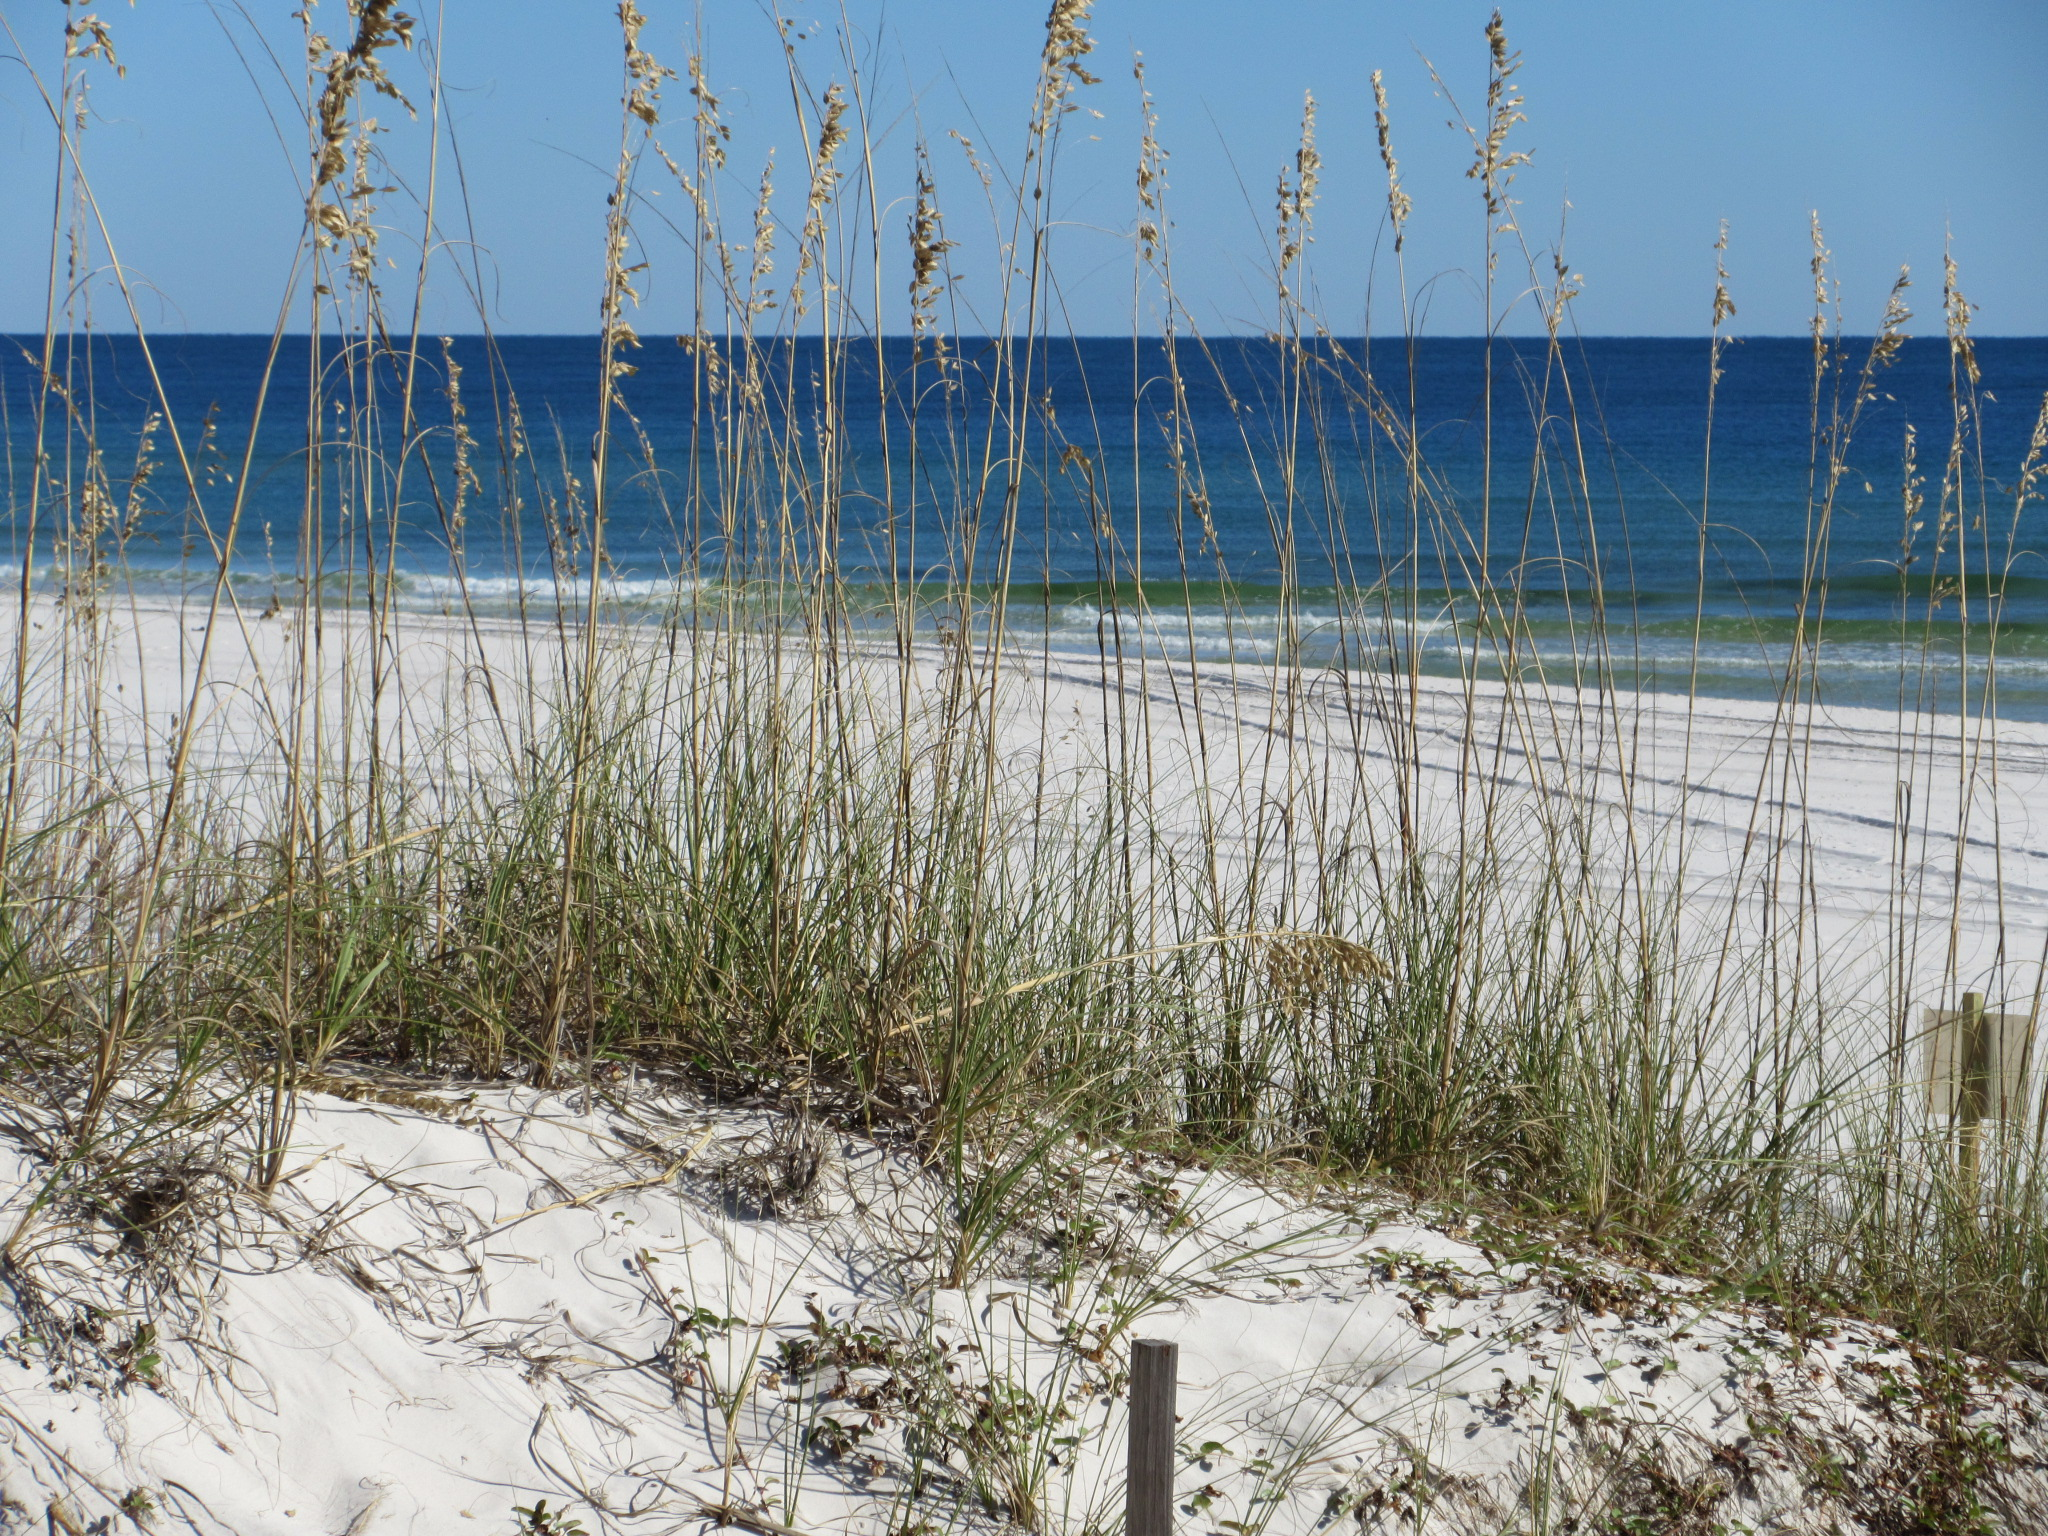 Thursday, January 28, 2016 4:00 PM – 6:00 PM Orange Beach Community Center 4849 S. Wilson Blvd. Orange Beach, AL 36561 You're invited to the Master Plan Reveal Open House on January 28, 2016, from 4:00 PM to 6:00 PM, at the Orange Beach Community Center. Come learn about what projects are being planned for all to enjoy, including visitor experience enhancements, dune restoration, building an environmental information center, creating a research and education center and rebuilding the Lodge. Open House No. 4 will reveal a multi-year master plan for Gulf State Park based on feedback received during the previous open houses and by more than 2,600 individuals through an online survey. Please join us for this culminating session of more than one year of public planning. Be sure to mark your calendar and attend the Master Plan Reveal Open House